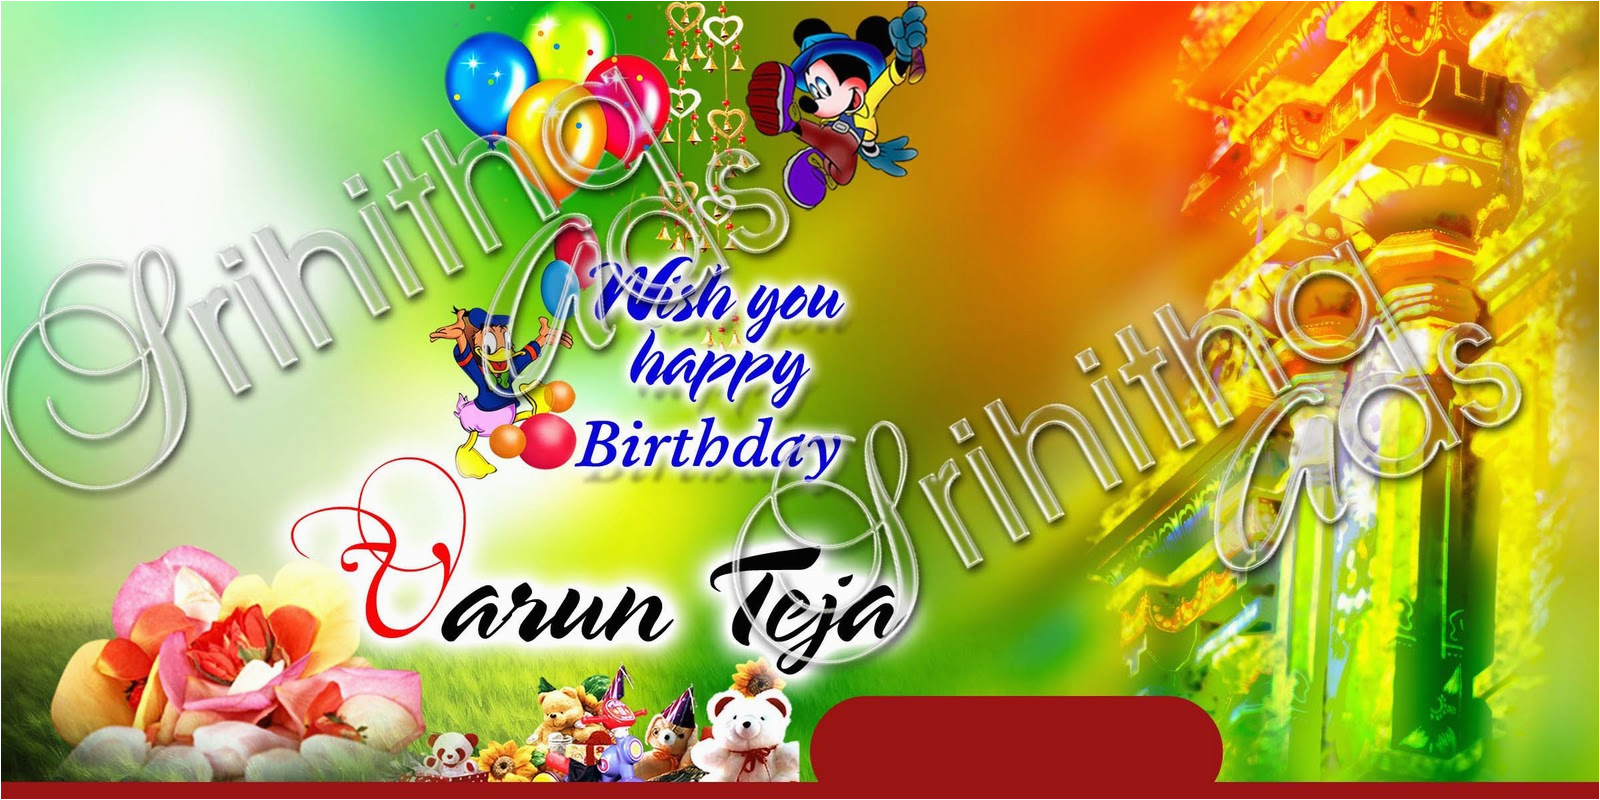 birthday banner background psd